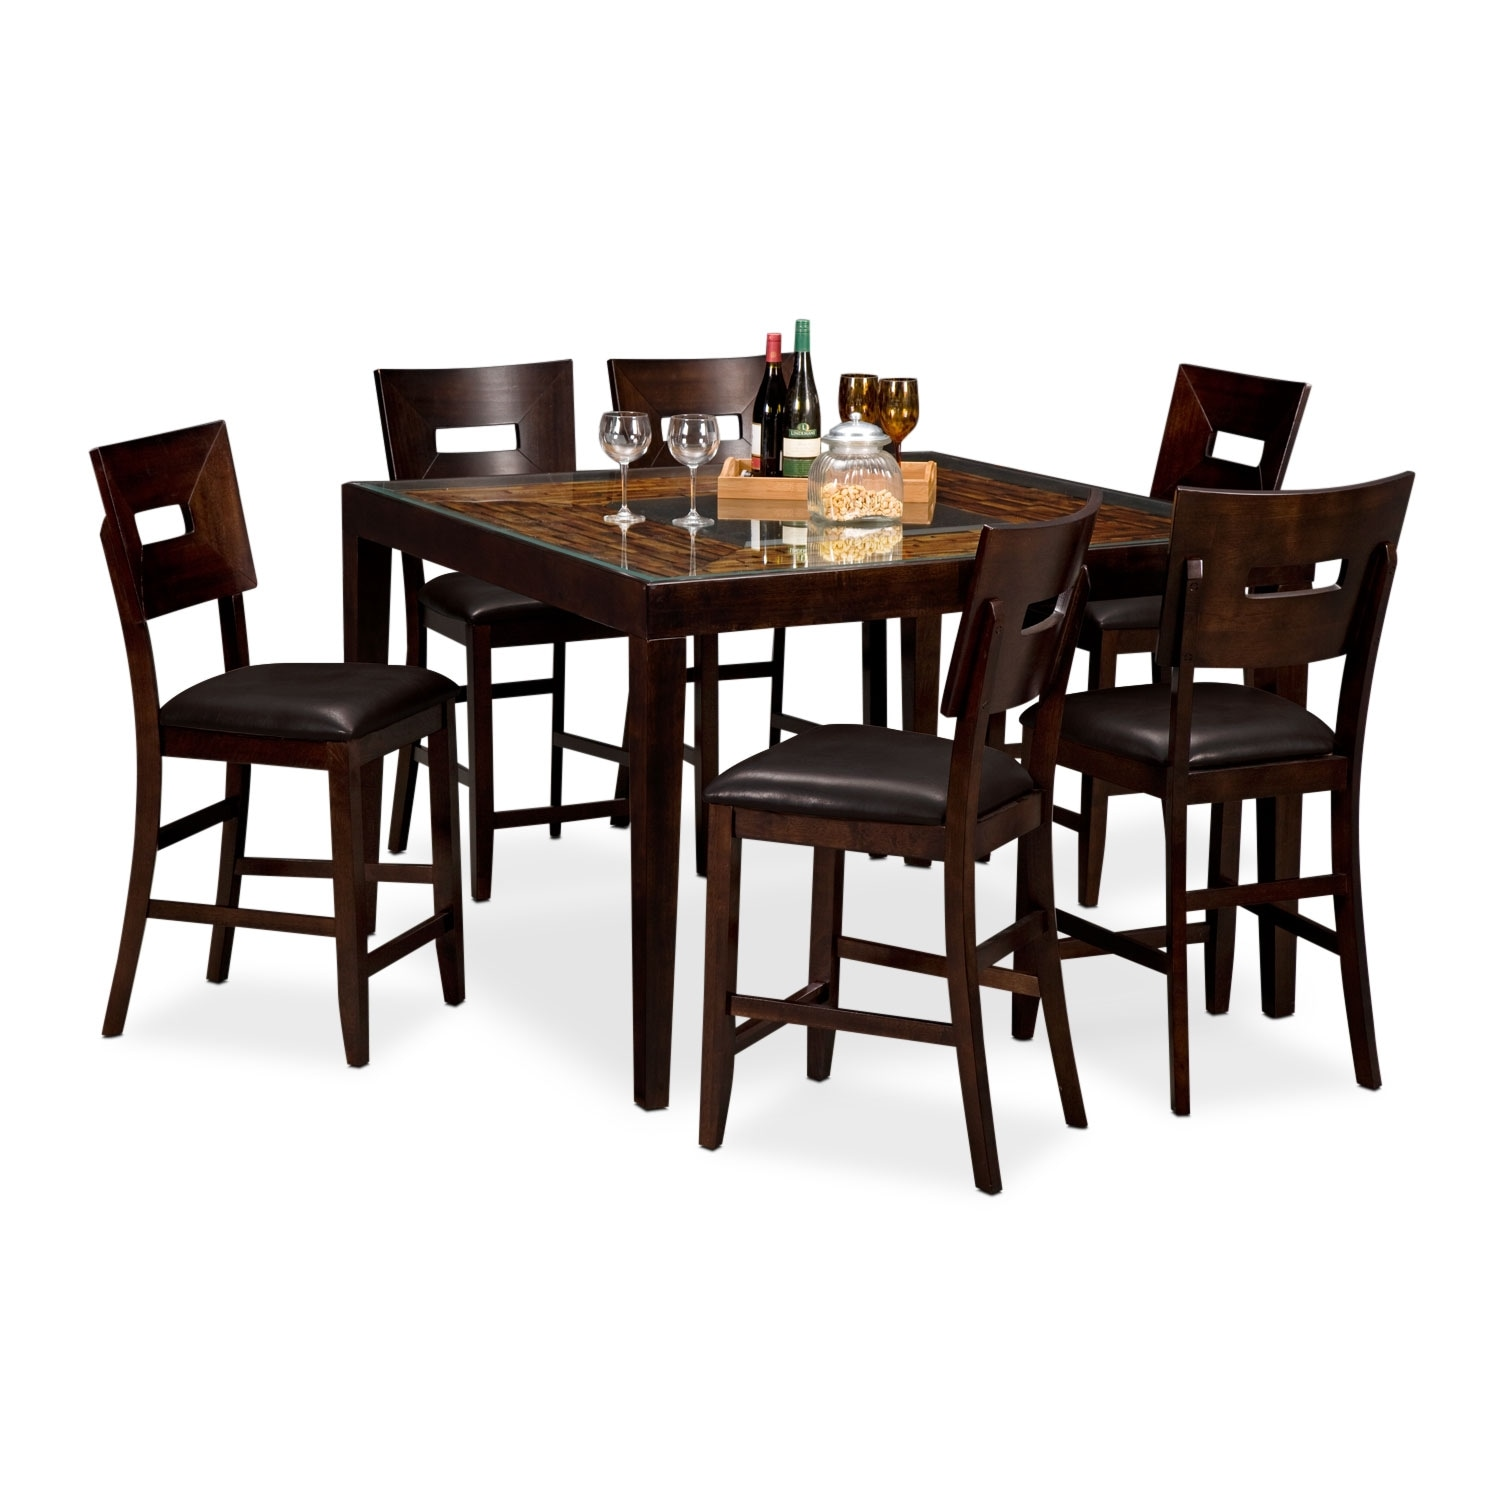 Cyprus II 7 Pc. Counter-Height Dinette